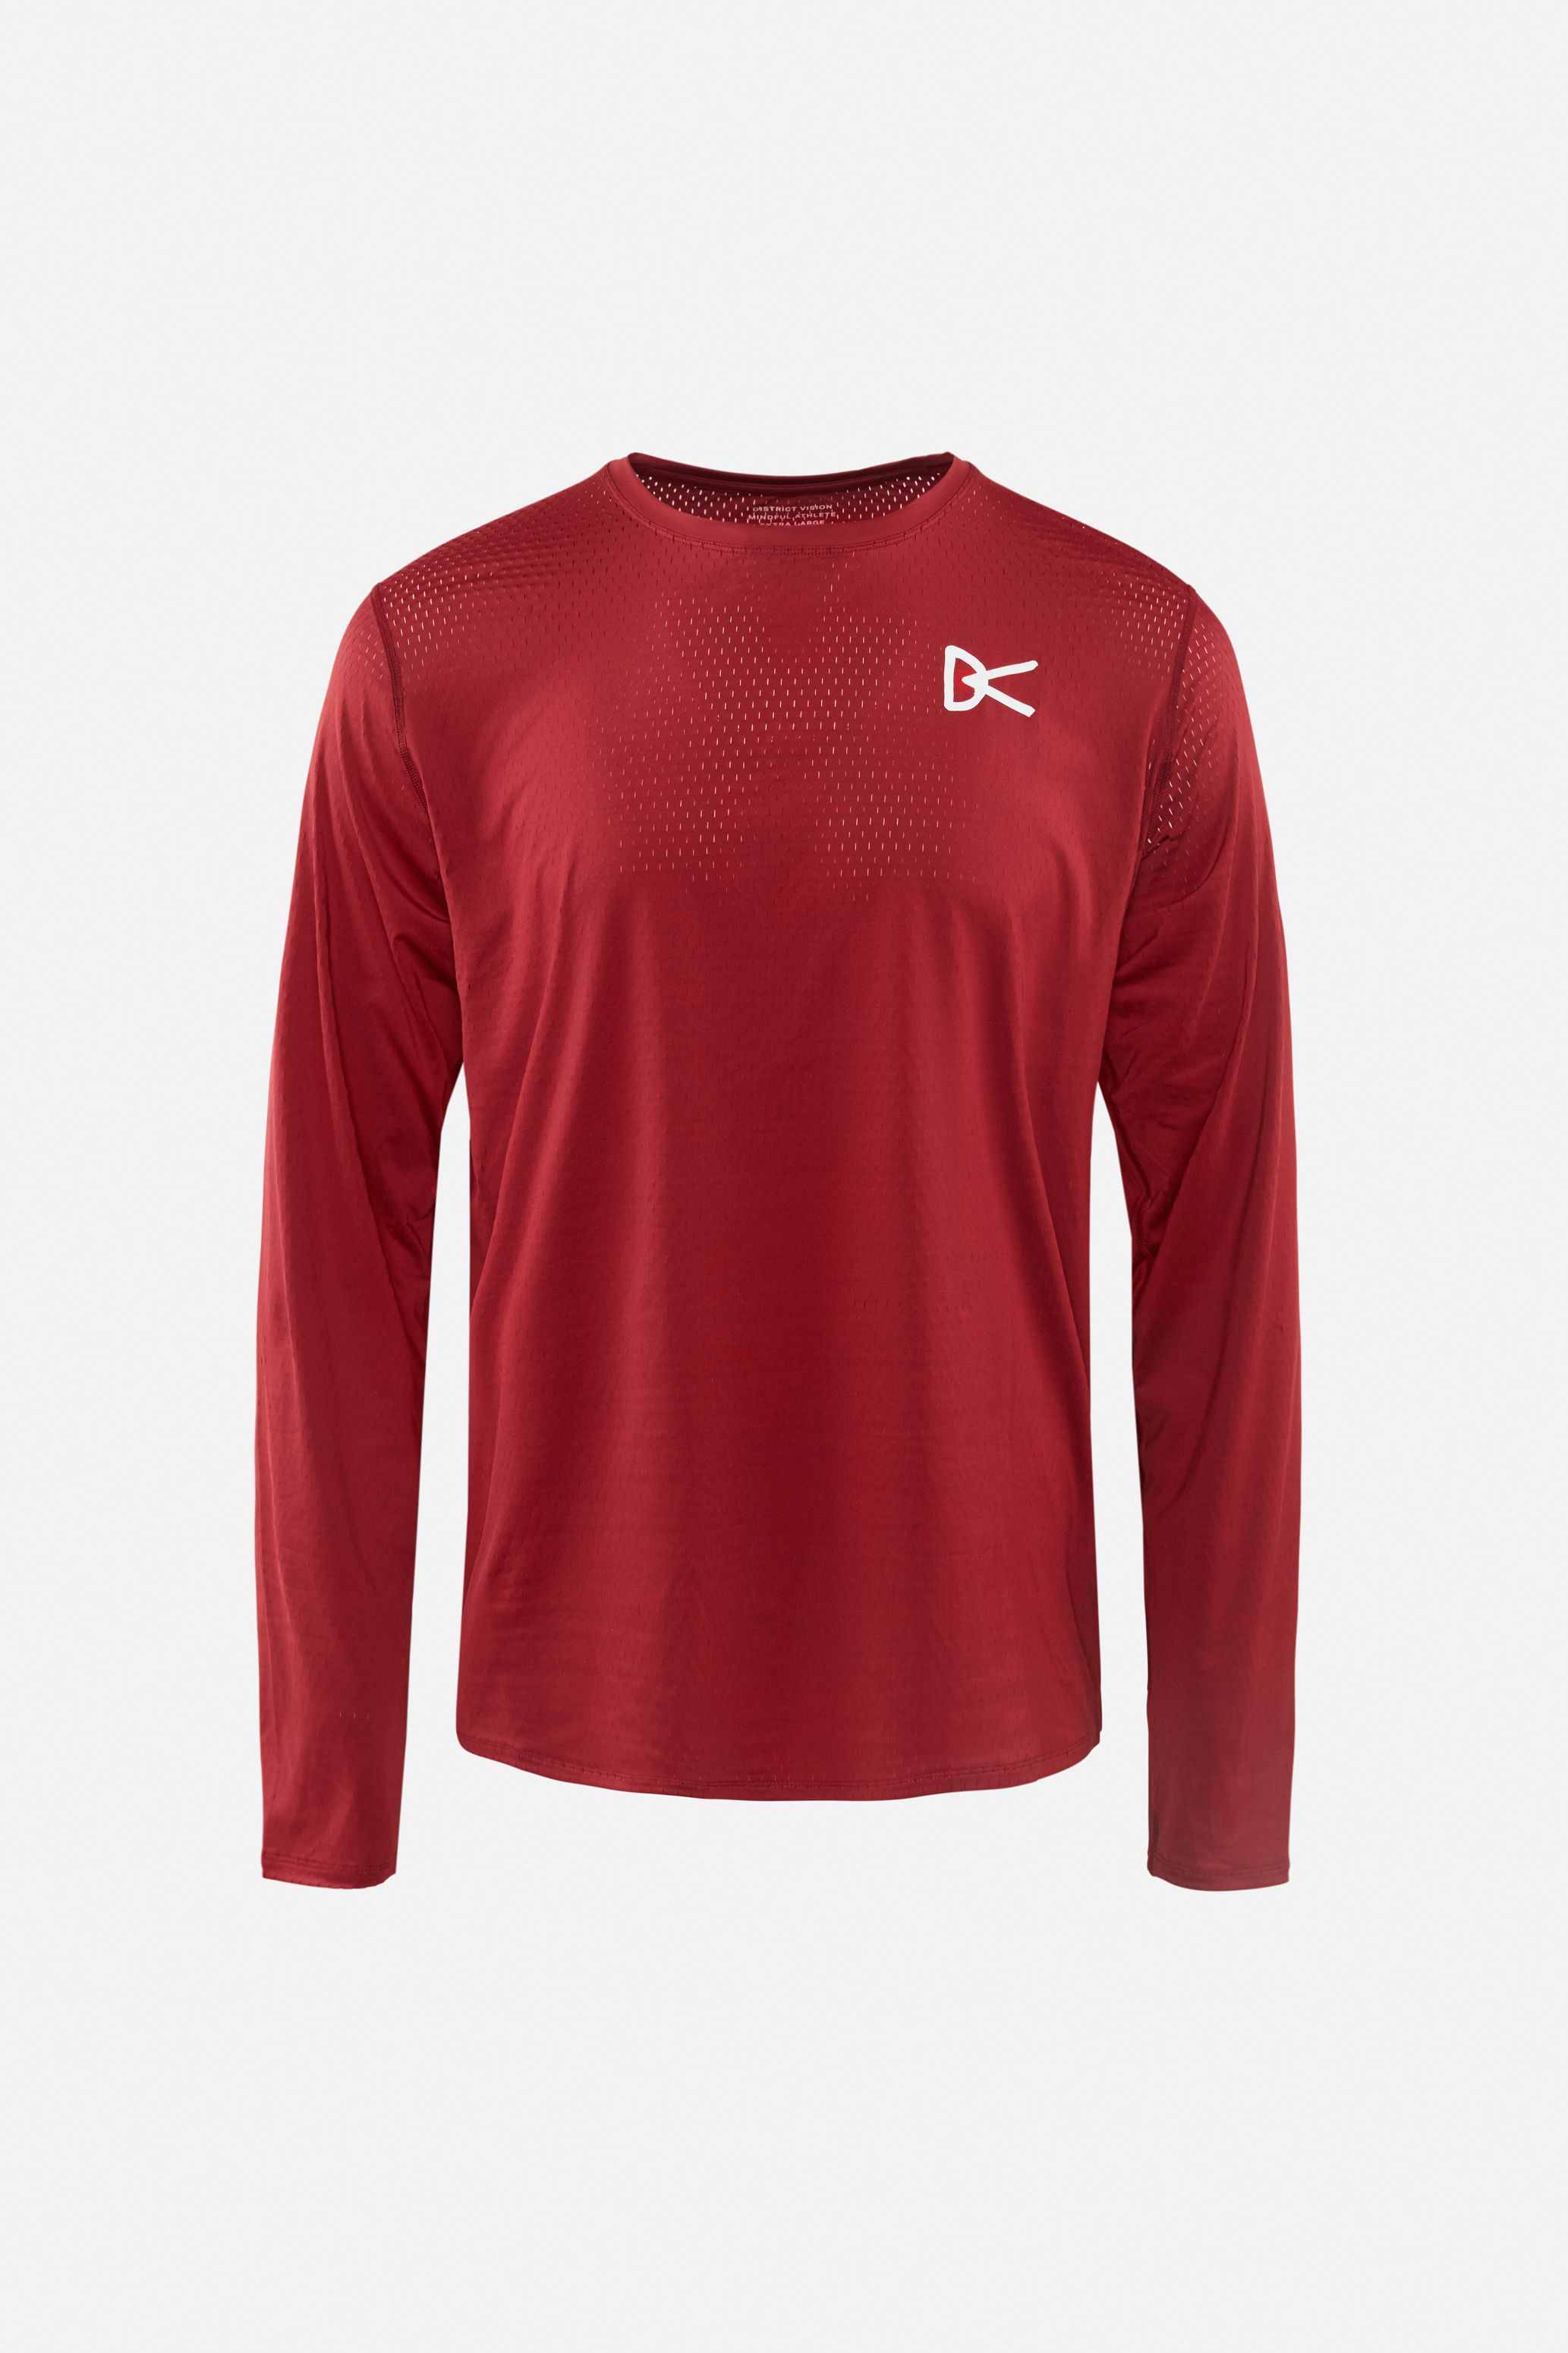 Air––Wear Long Sleeve T-Shirt, Burgundy